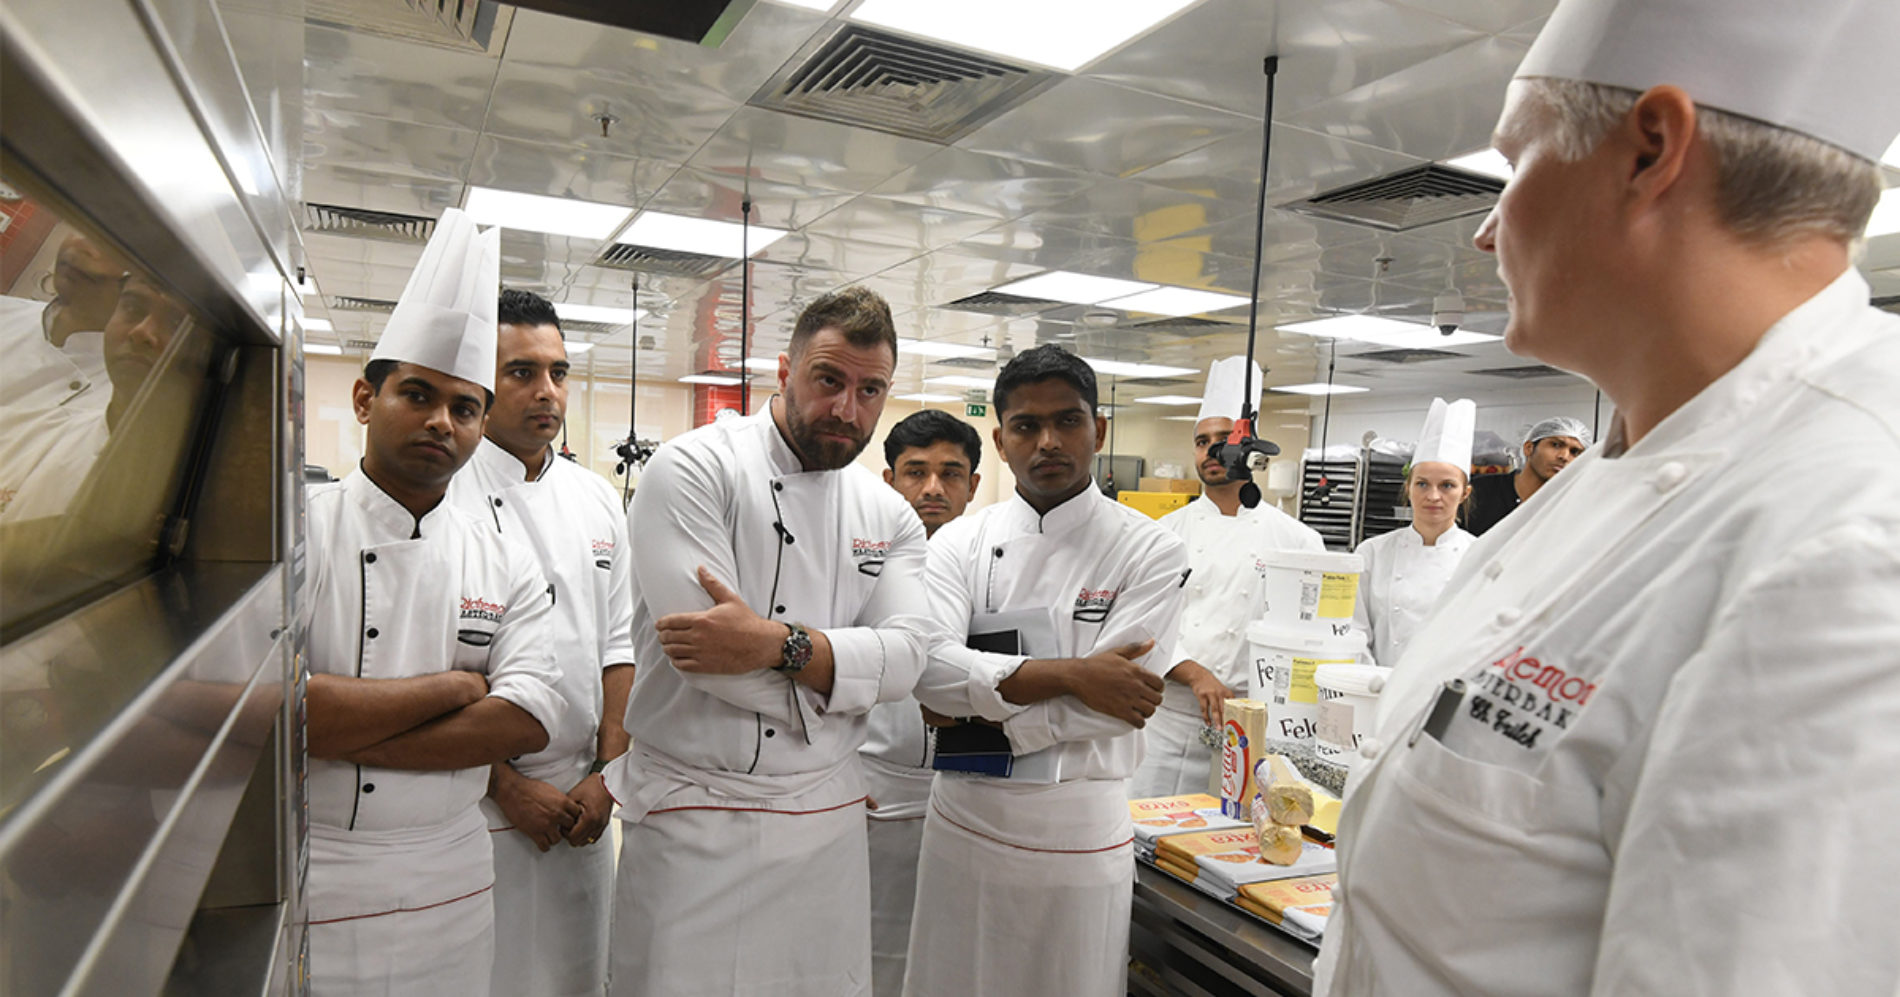 Do professional culinary competitions actually benefit the industry?